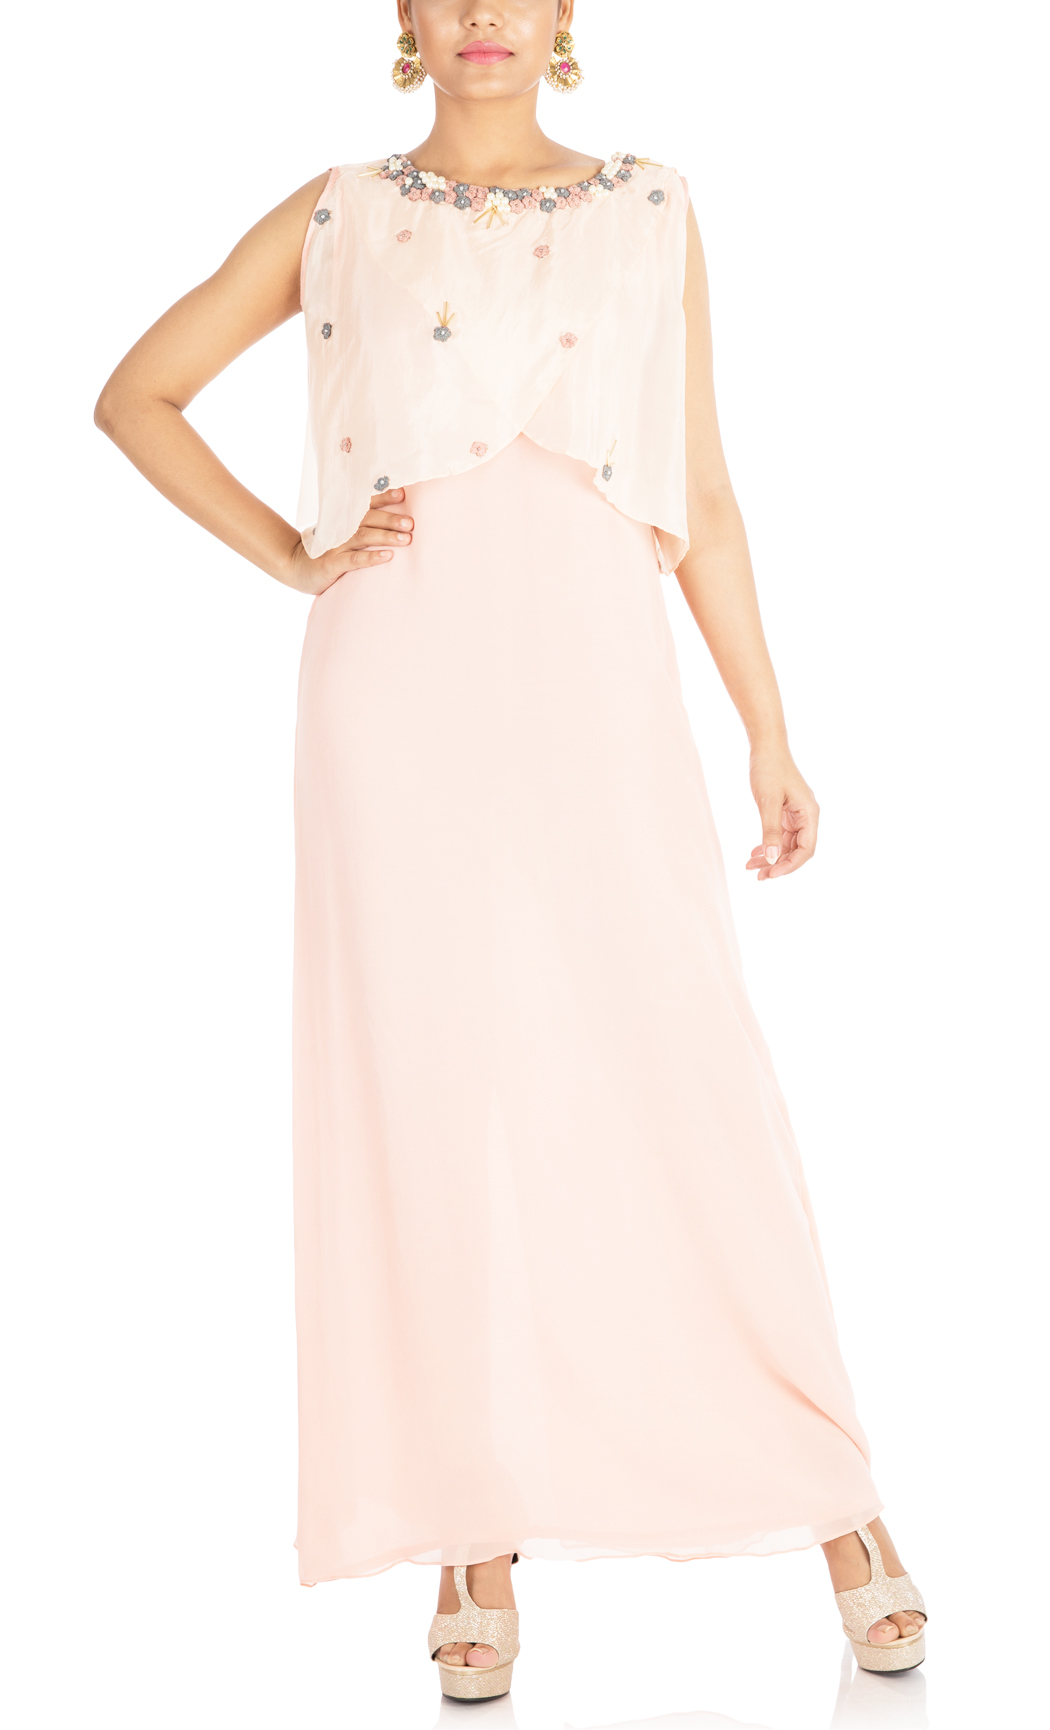 Powder Peach with Overlaped Cape - Buy Online